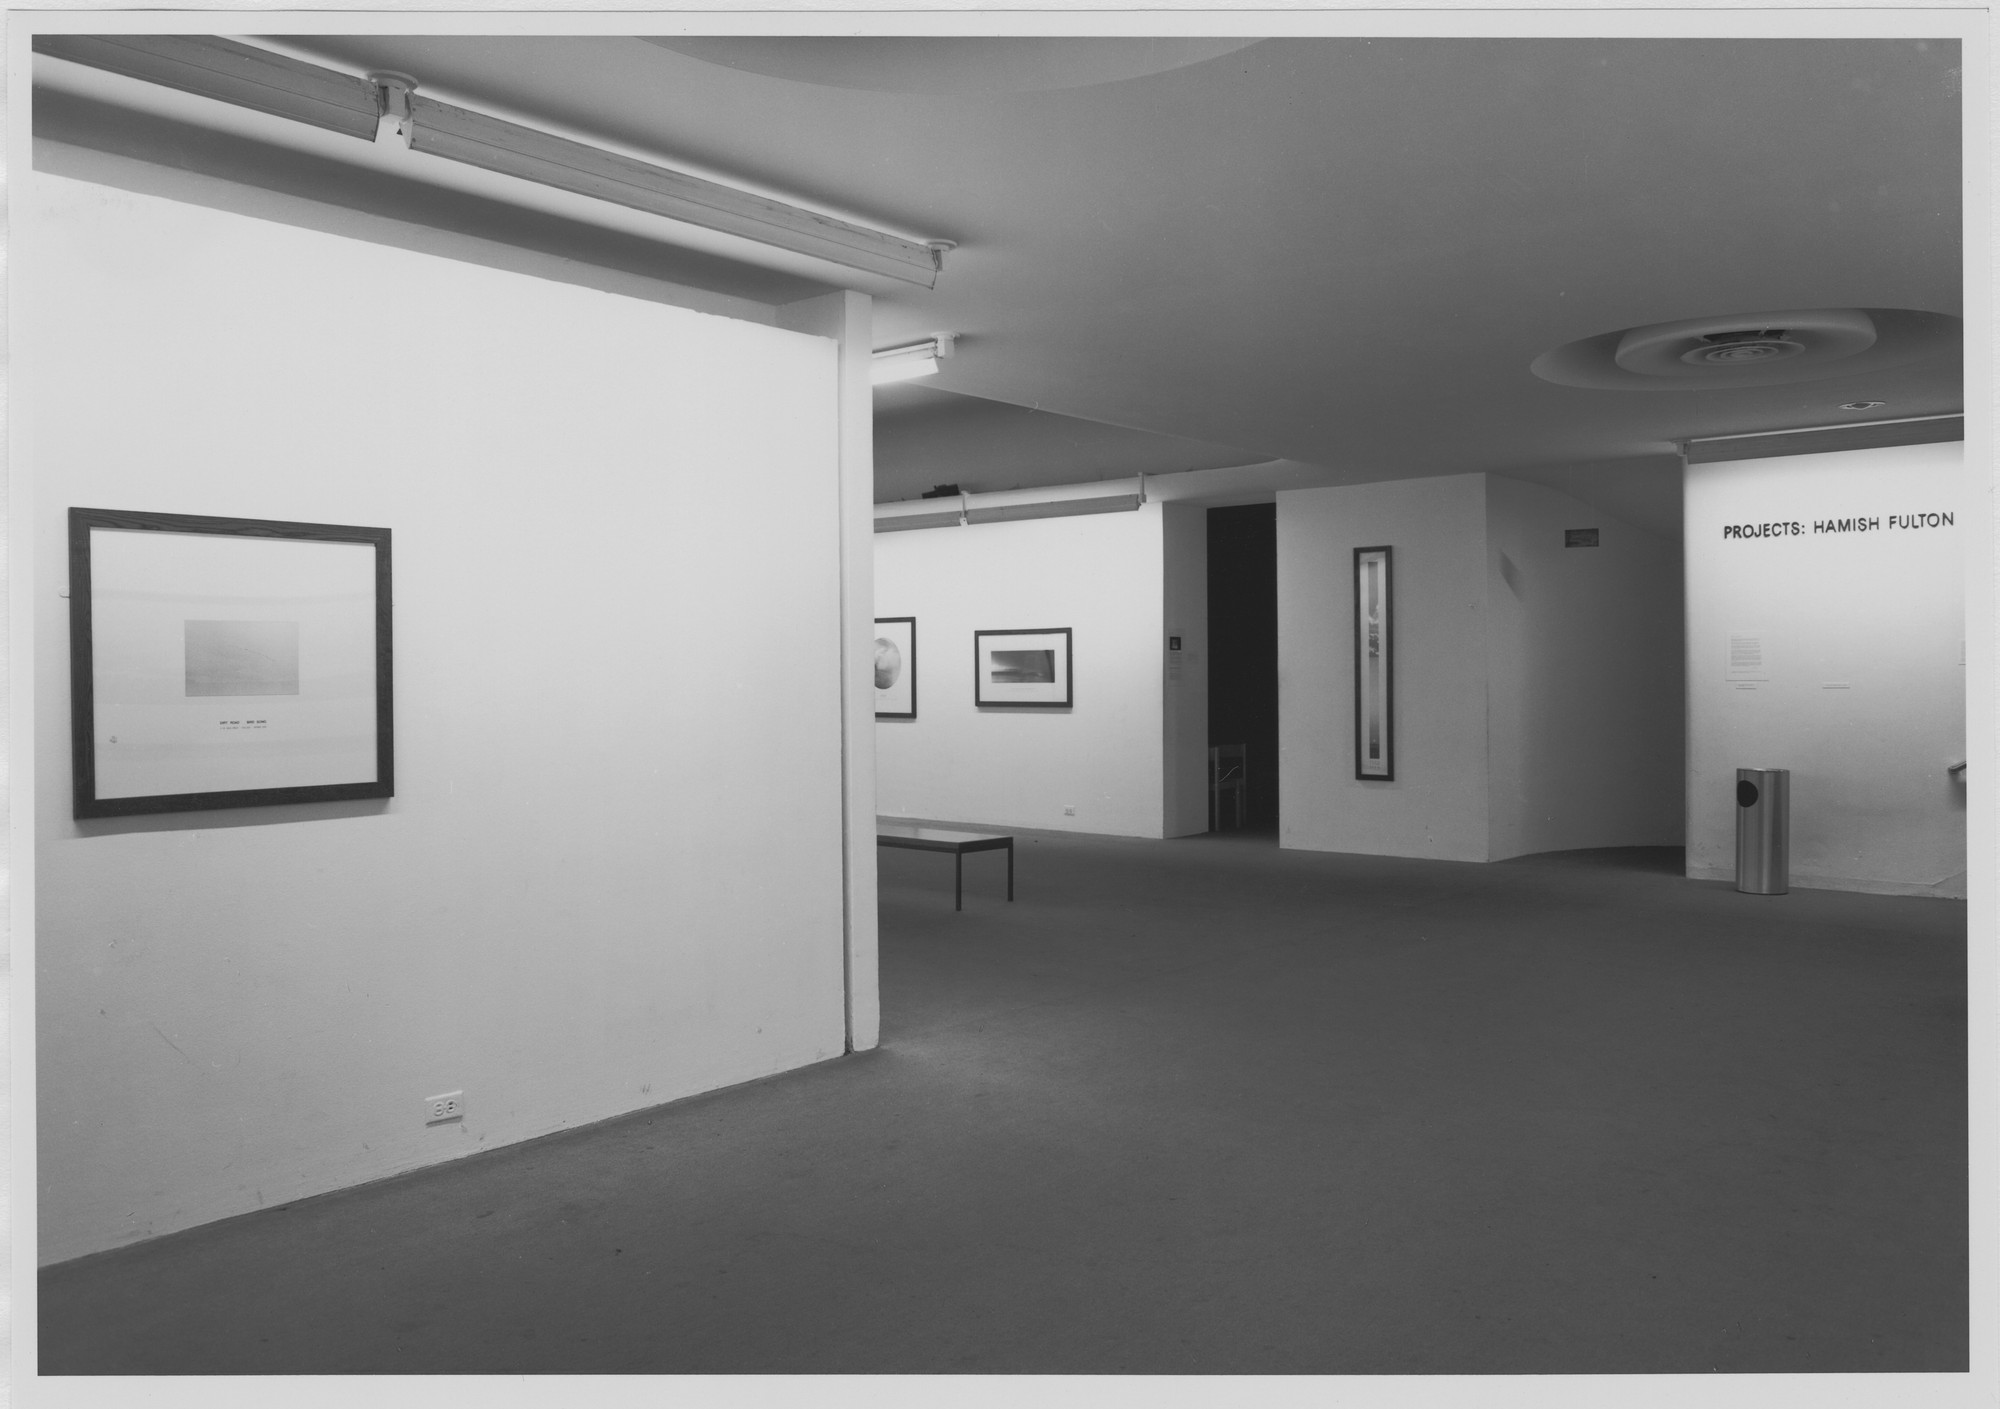 "Installation view of the exhibition, ""Projects: Hamish Fulton"" October 3, 1978–November 26, 1978. Photographic Archive. The Museum of Modern Art Archives, New York. IN1230.1. Photograph by Katherine Keller."